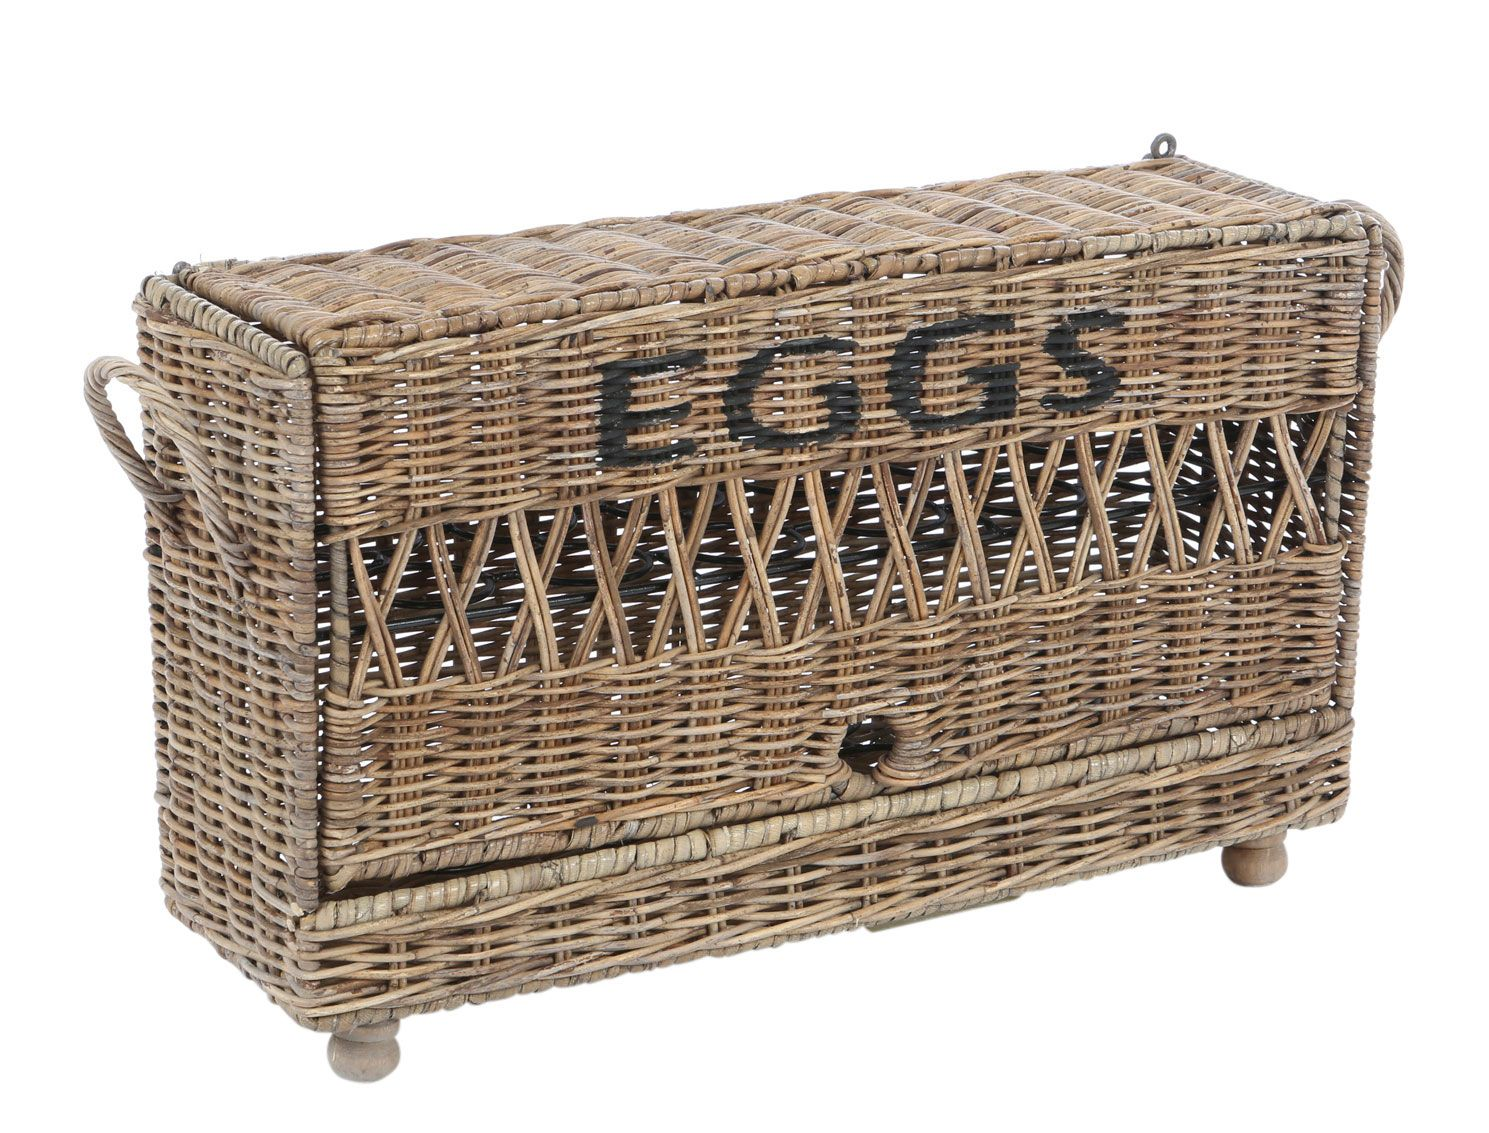 Rattan Eierkorb